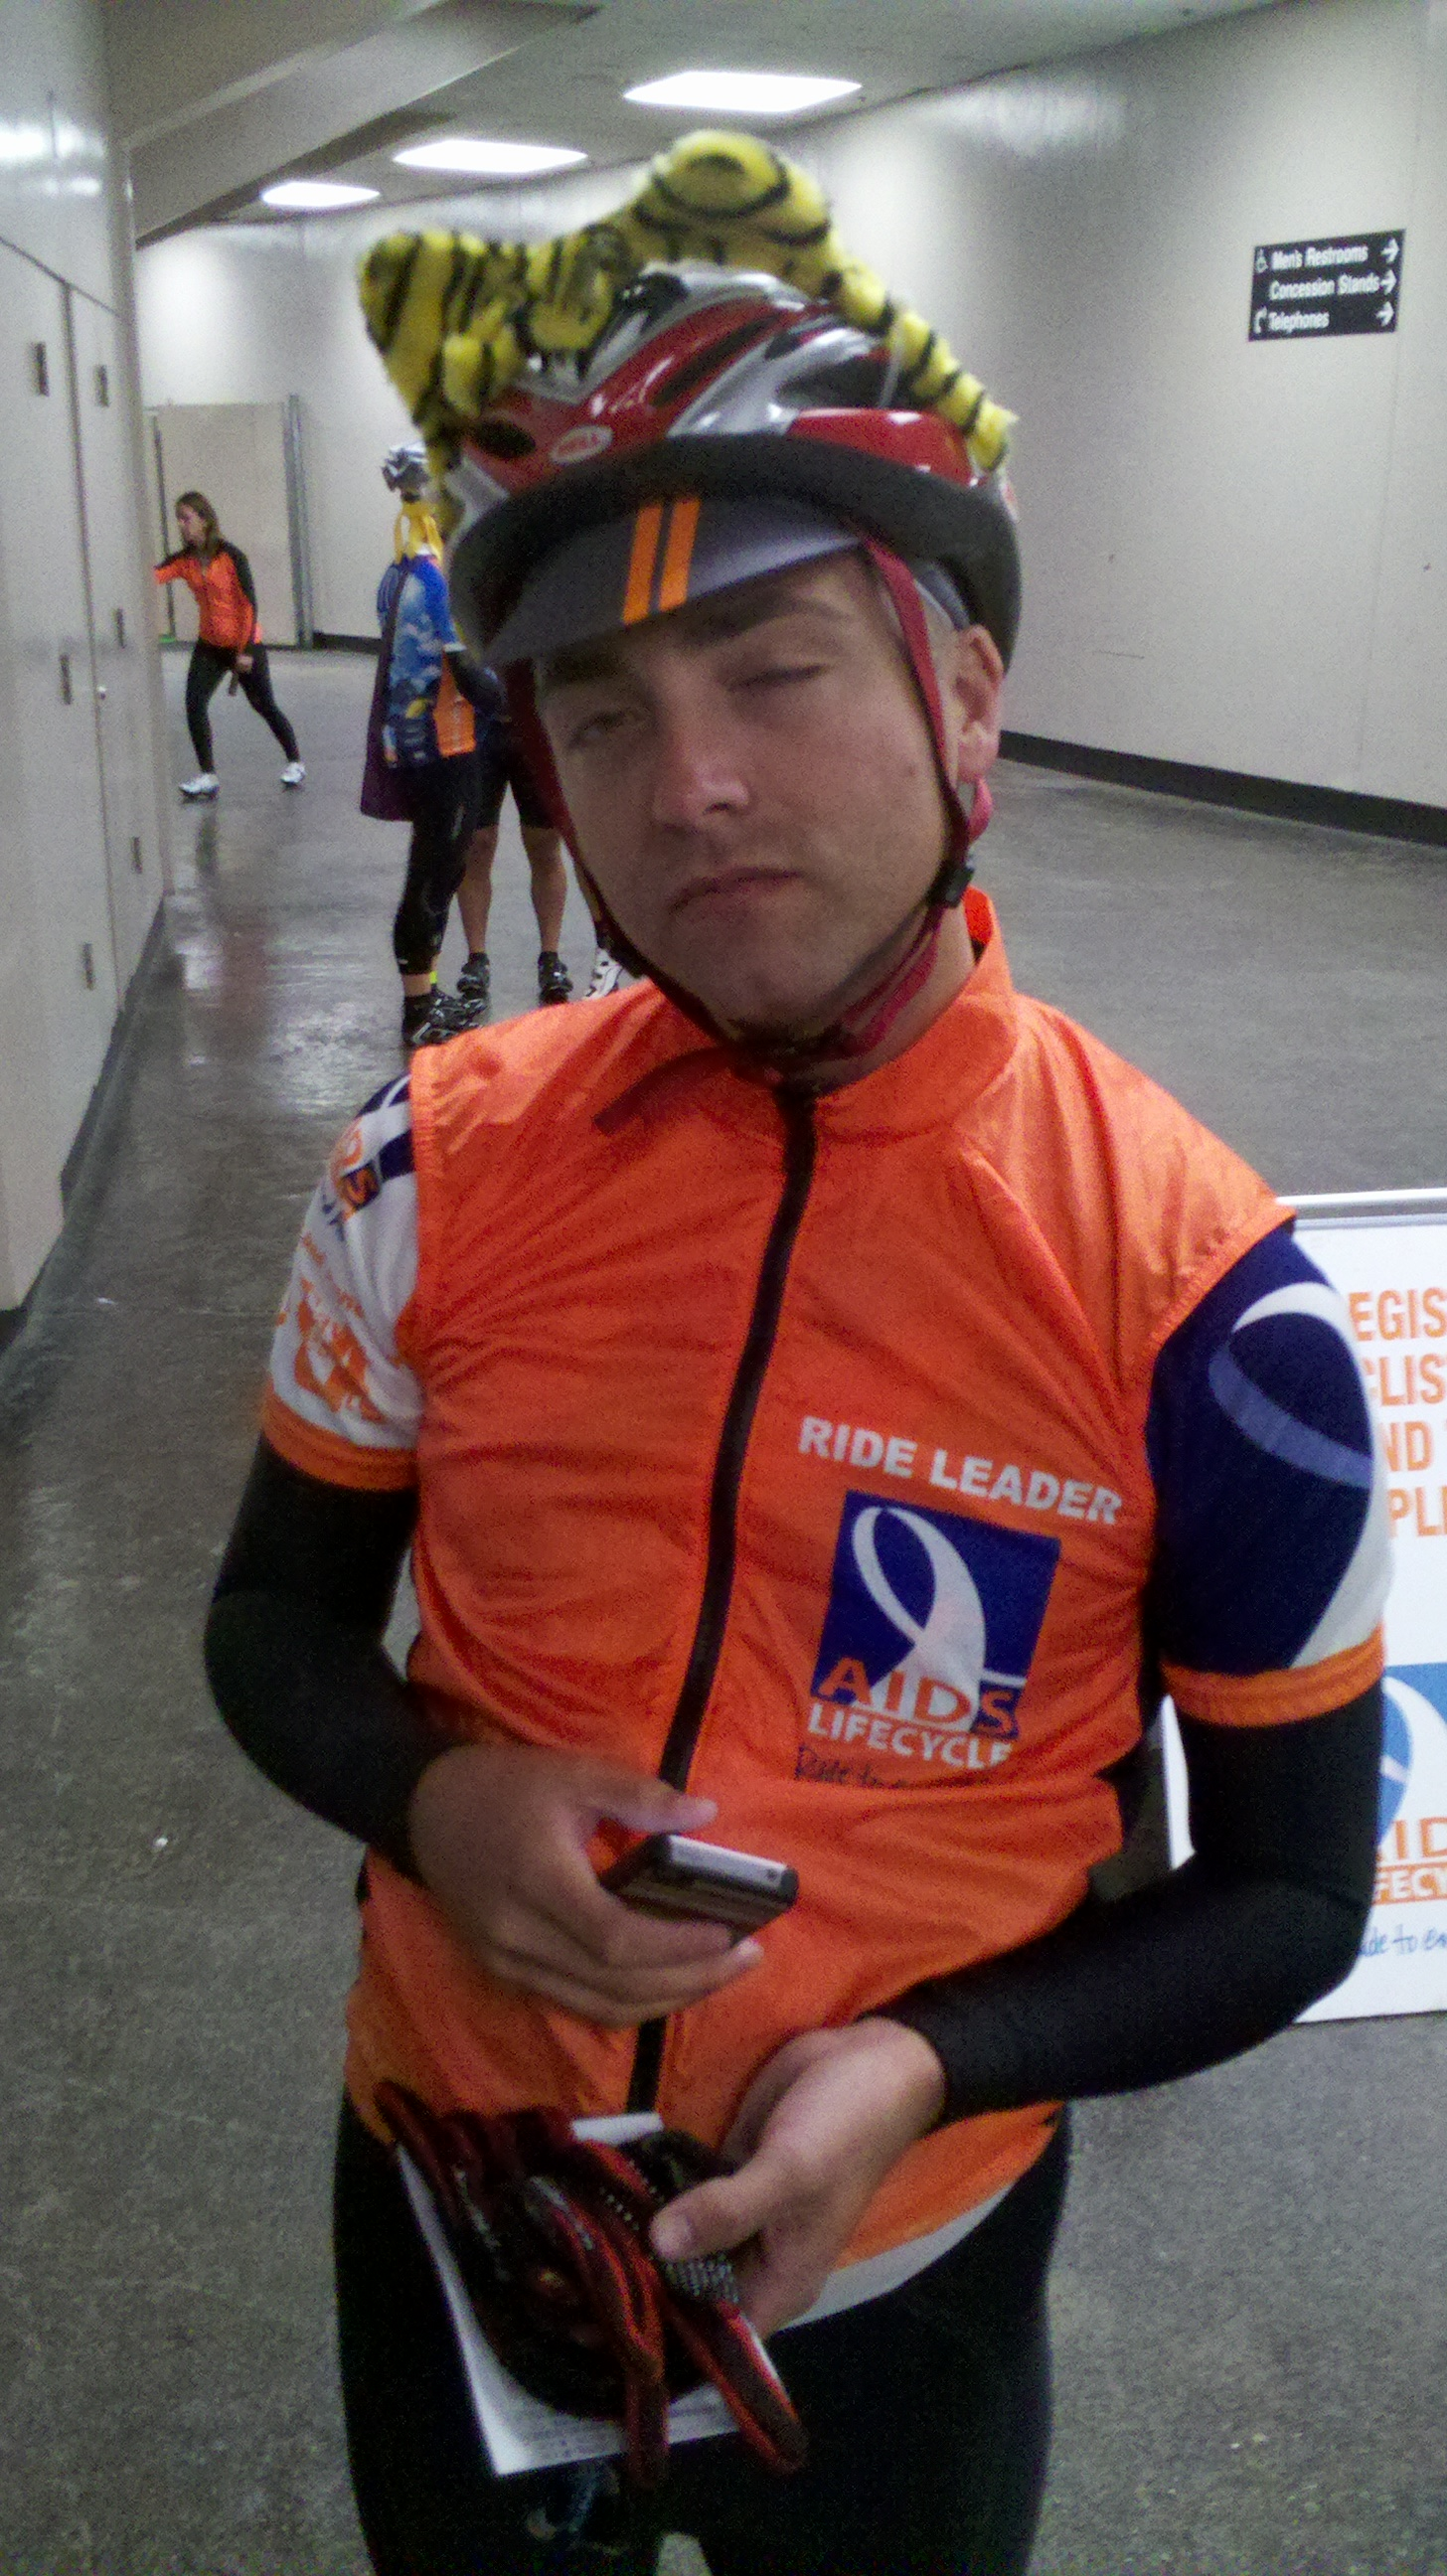 AIDS/Lifecycle Cyclist, Michael Bracco preparing for Day #1